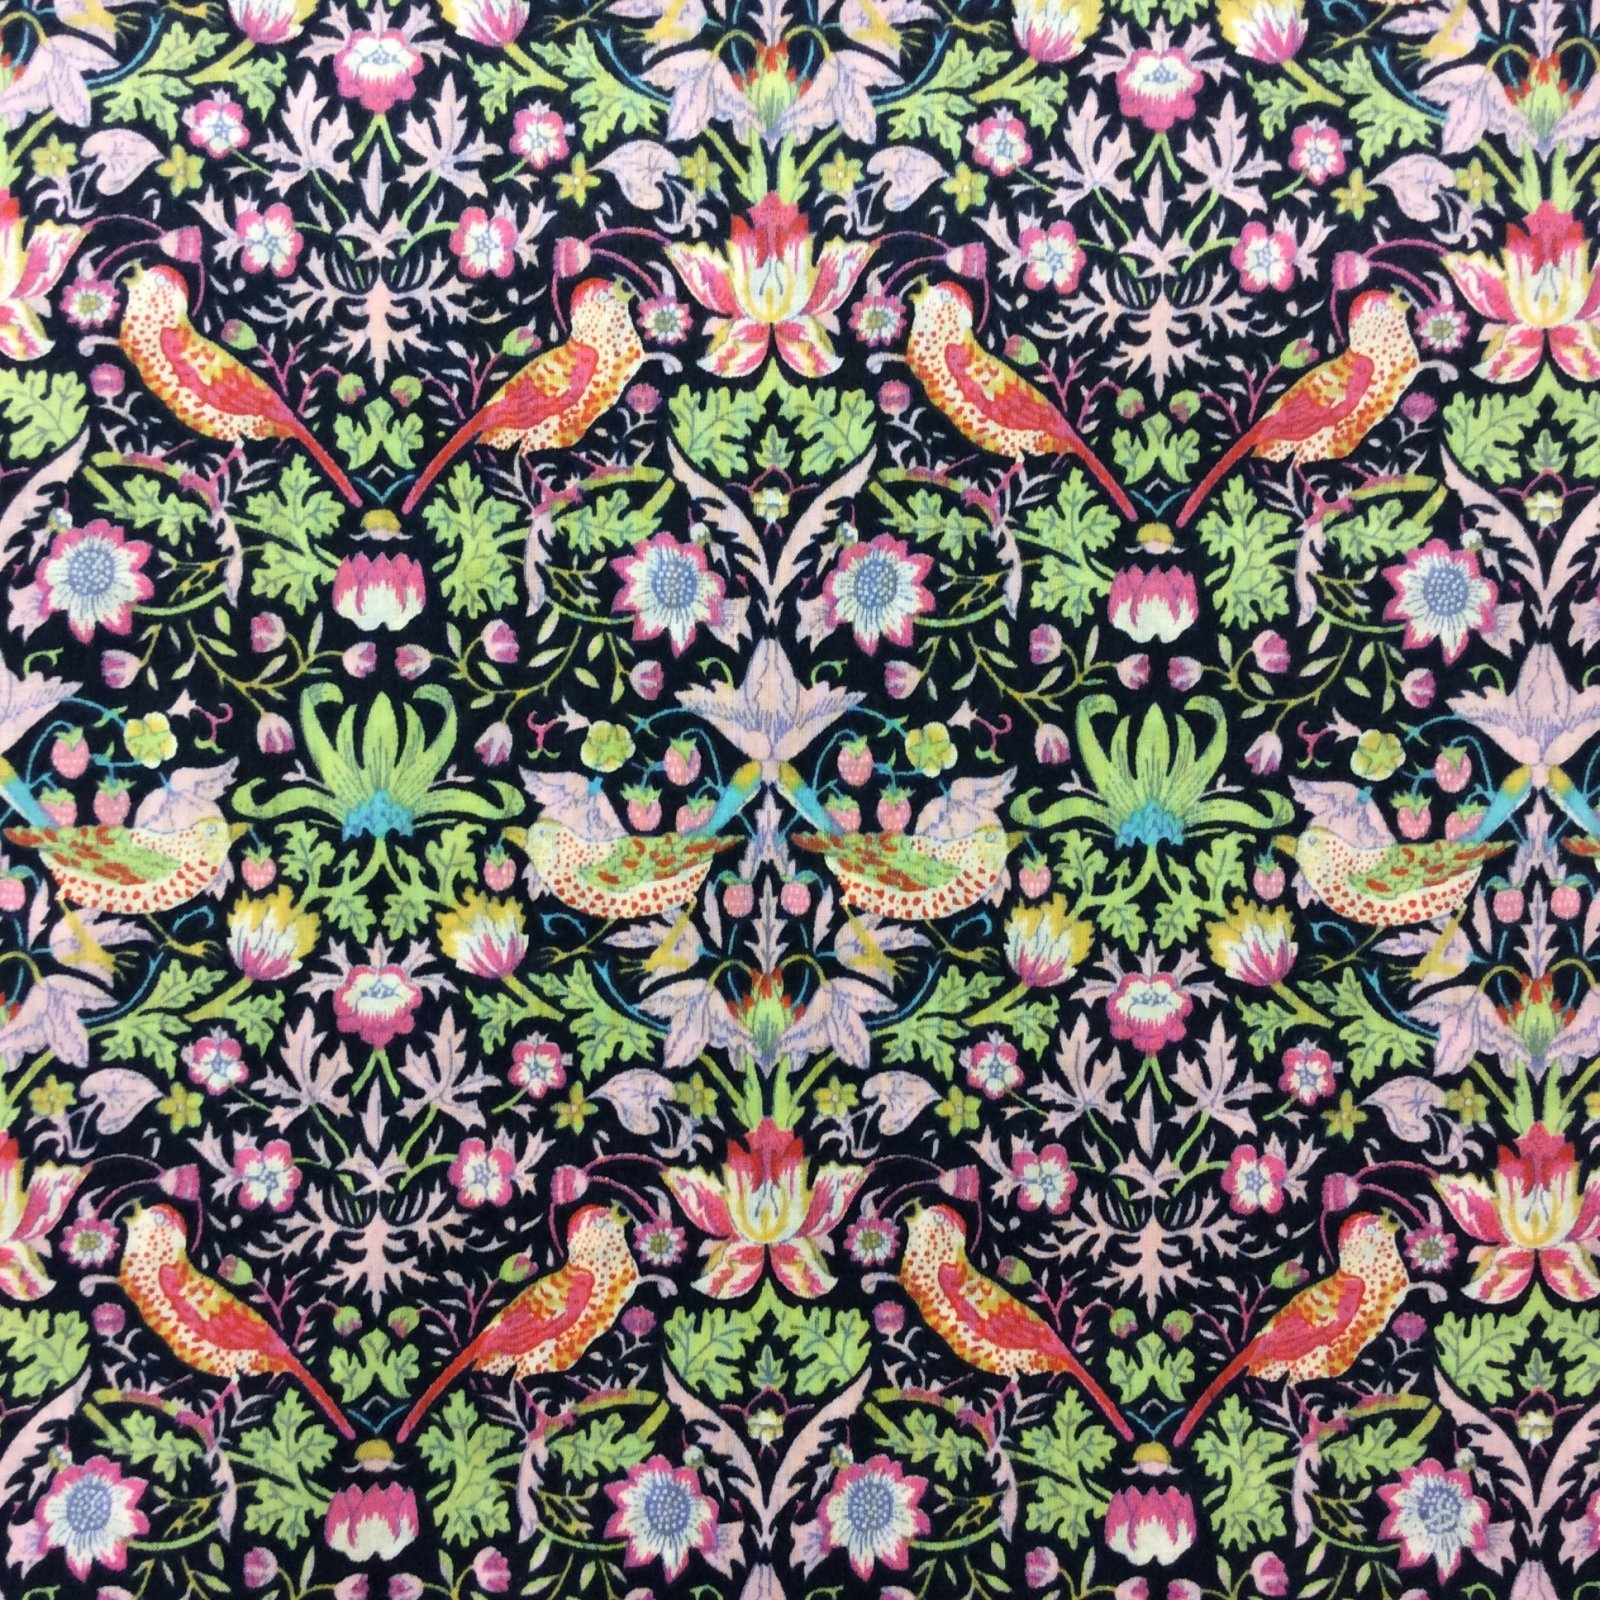 Liberty of London Strawberry Thief Floral Birds Cotton Apparel Lawn Fabric Fashion Fabric LL04